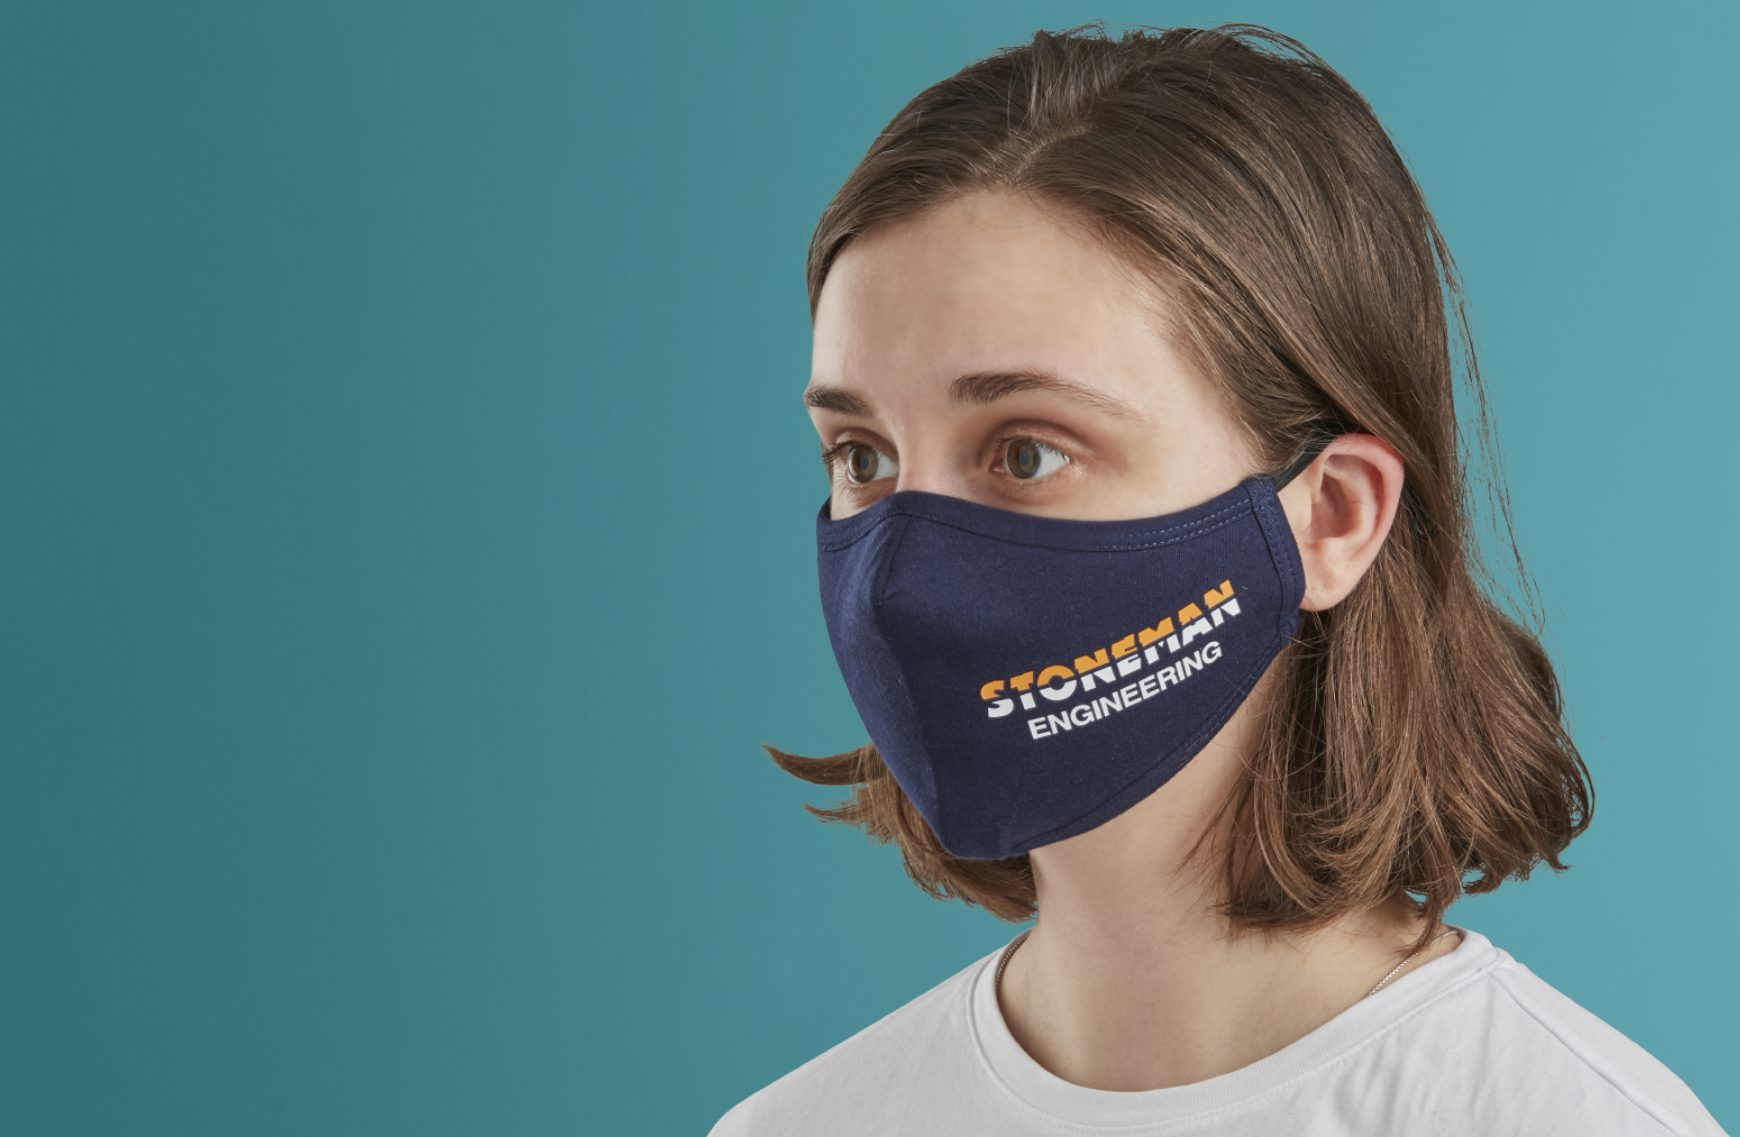 Woman wearing branded ppe mask